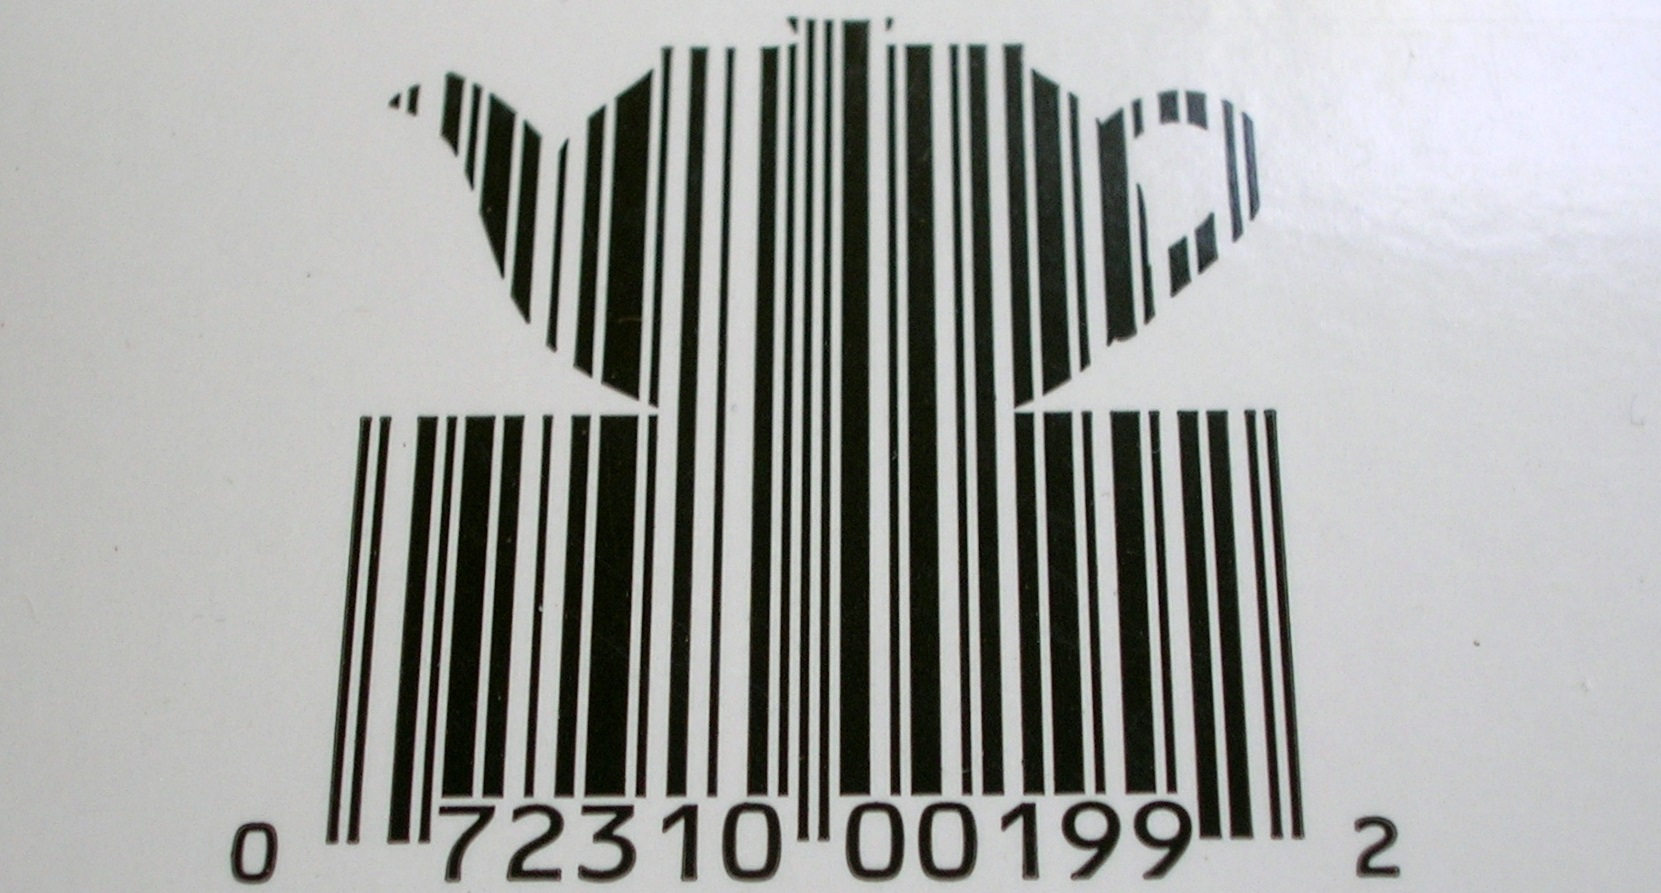 Barcode in the shape of a teapot